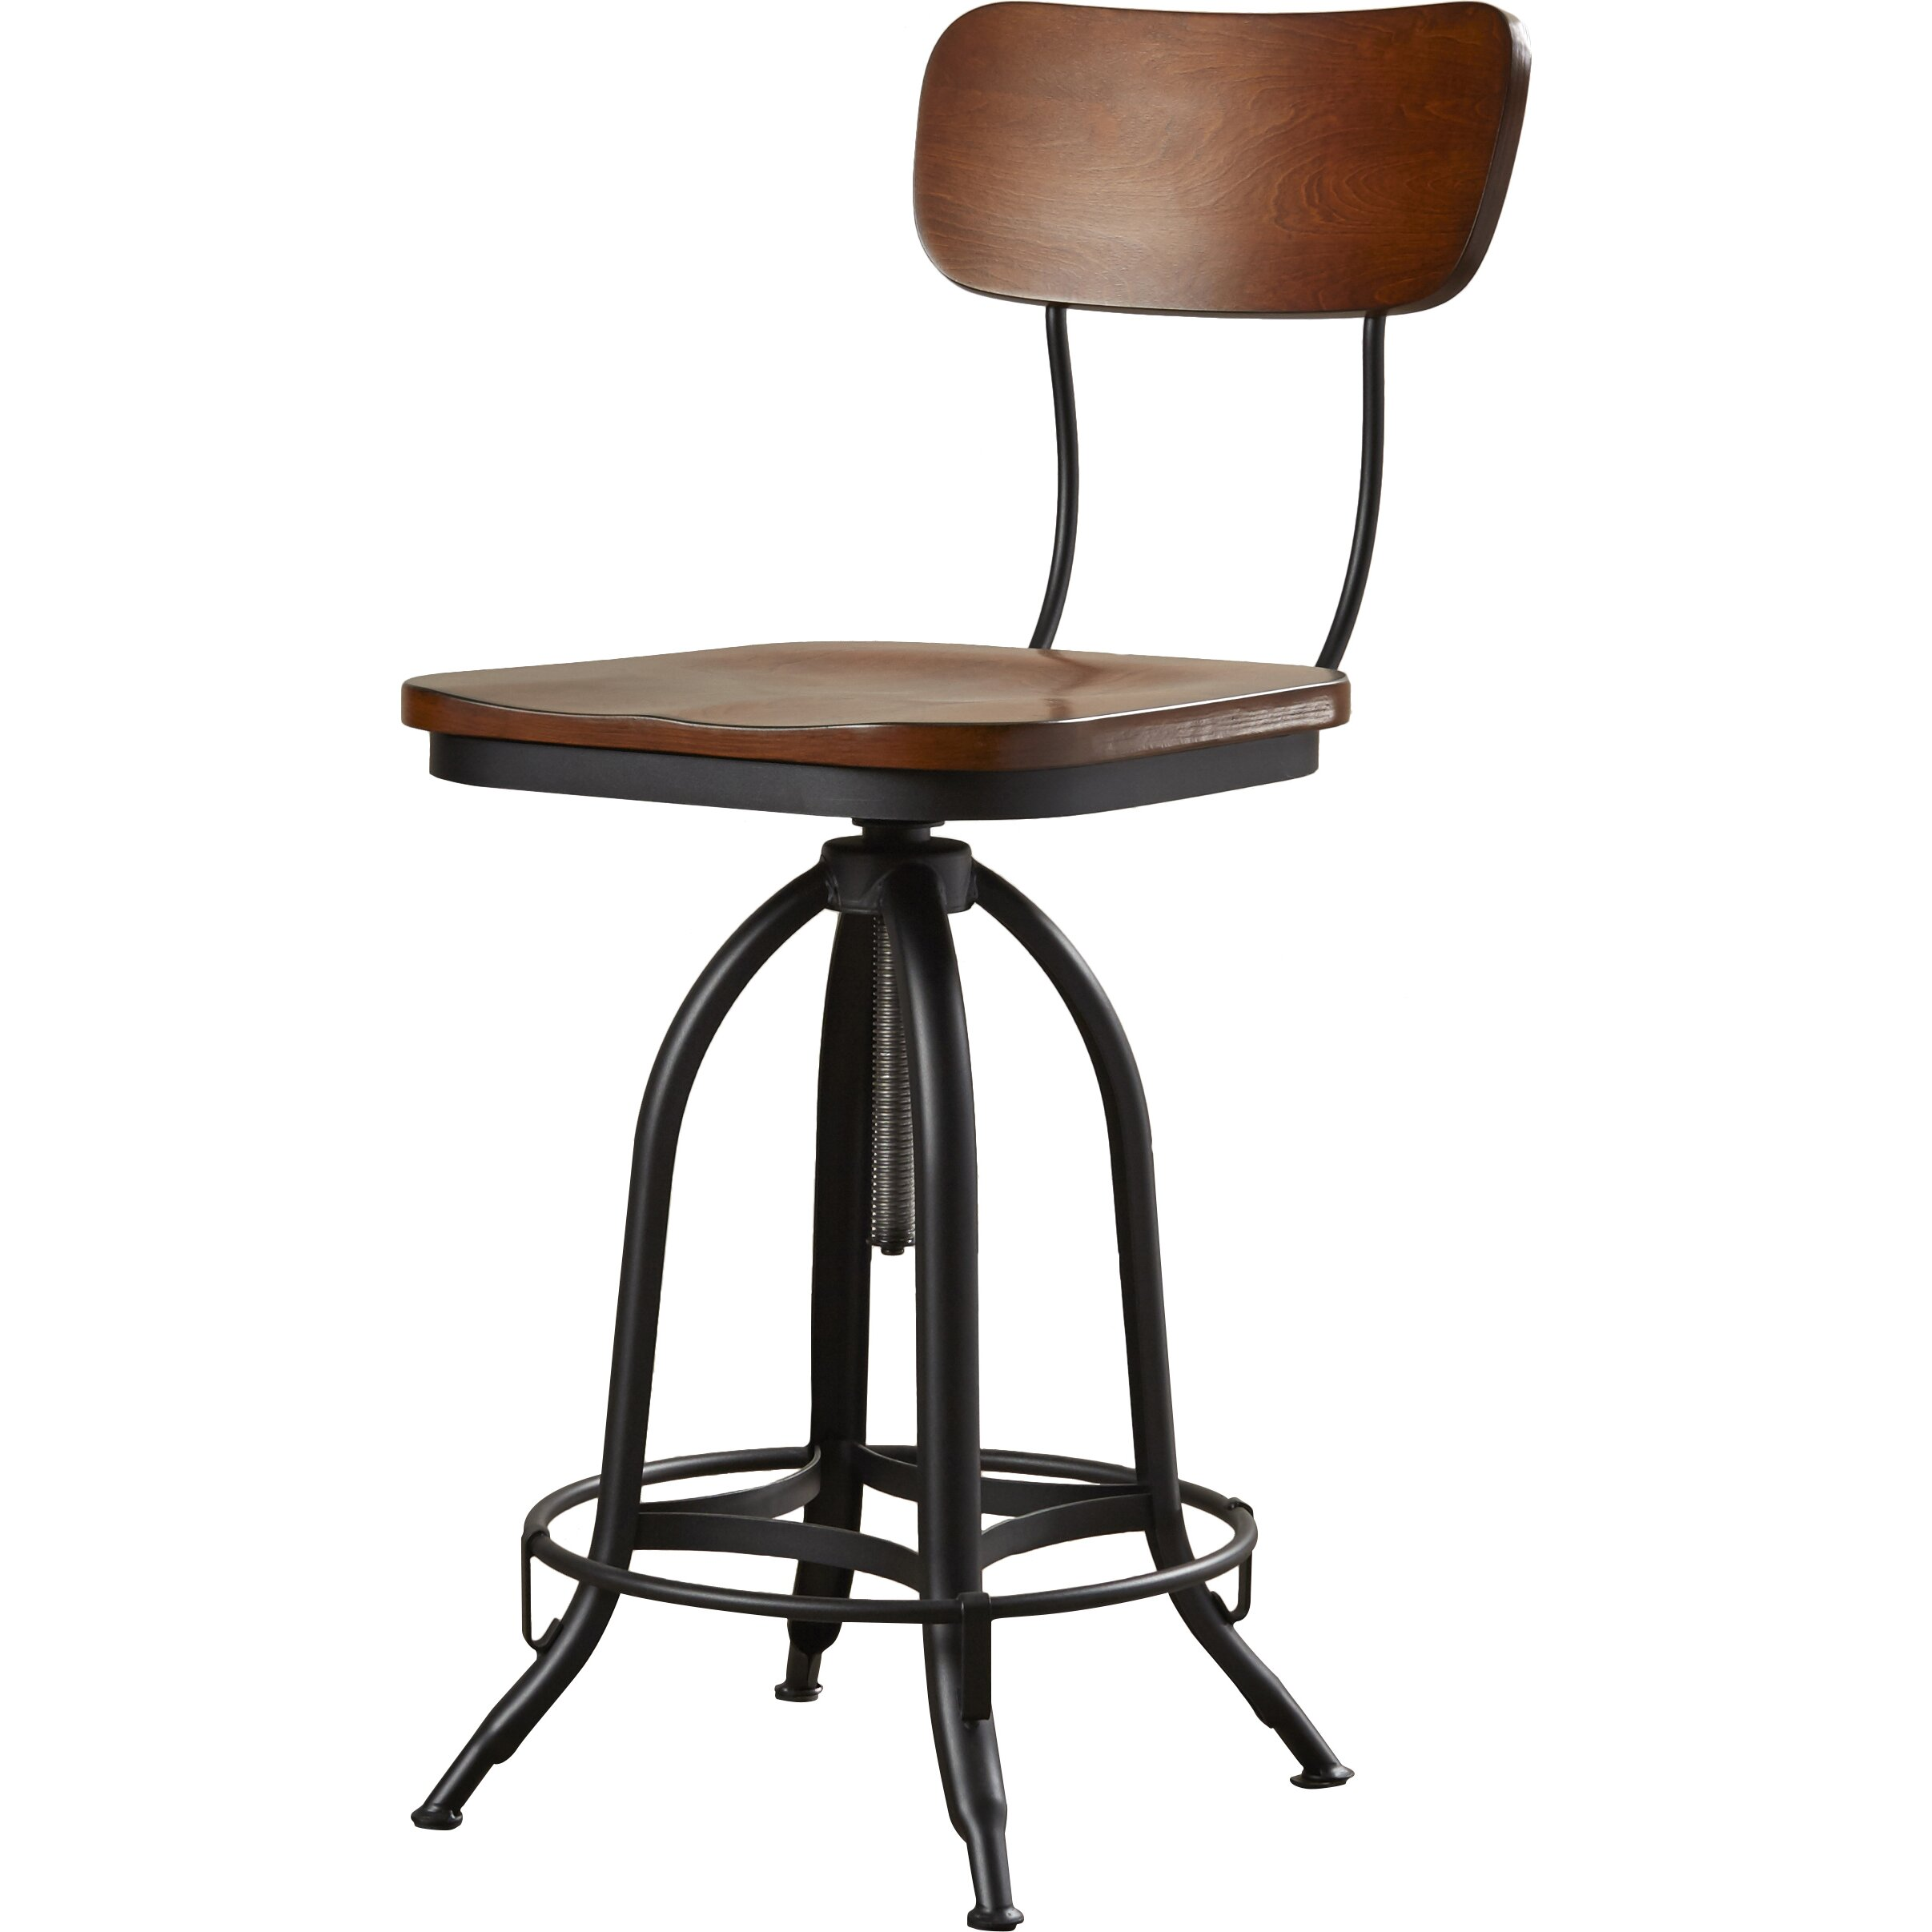 austin design adjustable height swivel bar stool reviews wayfair